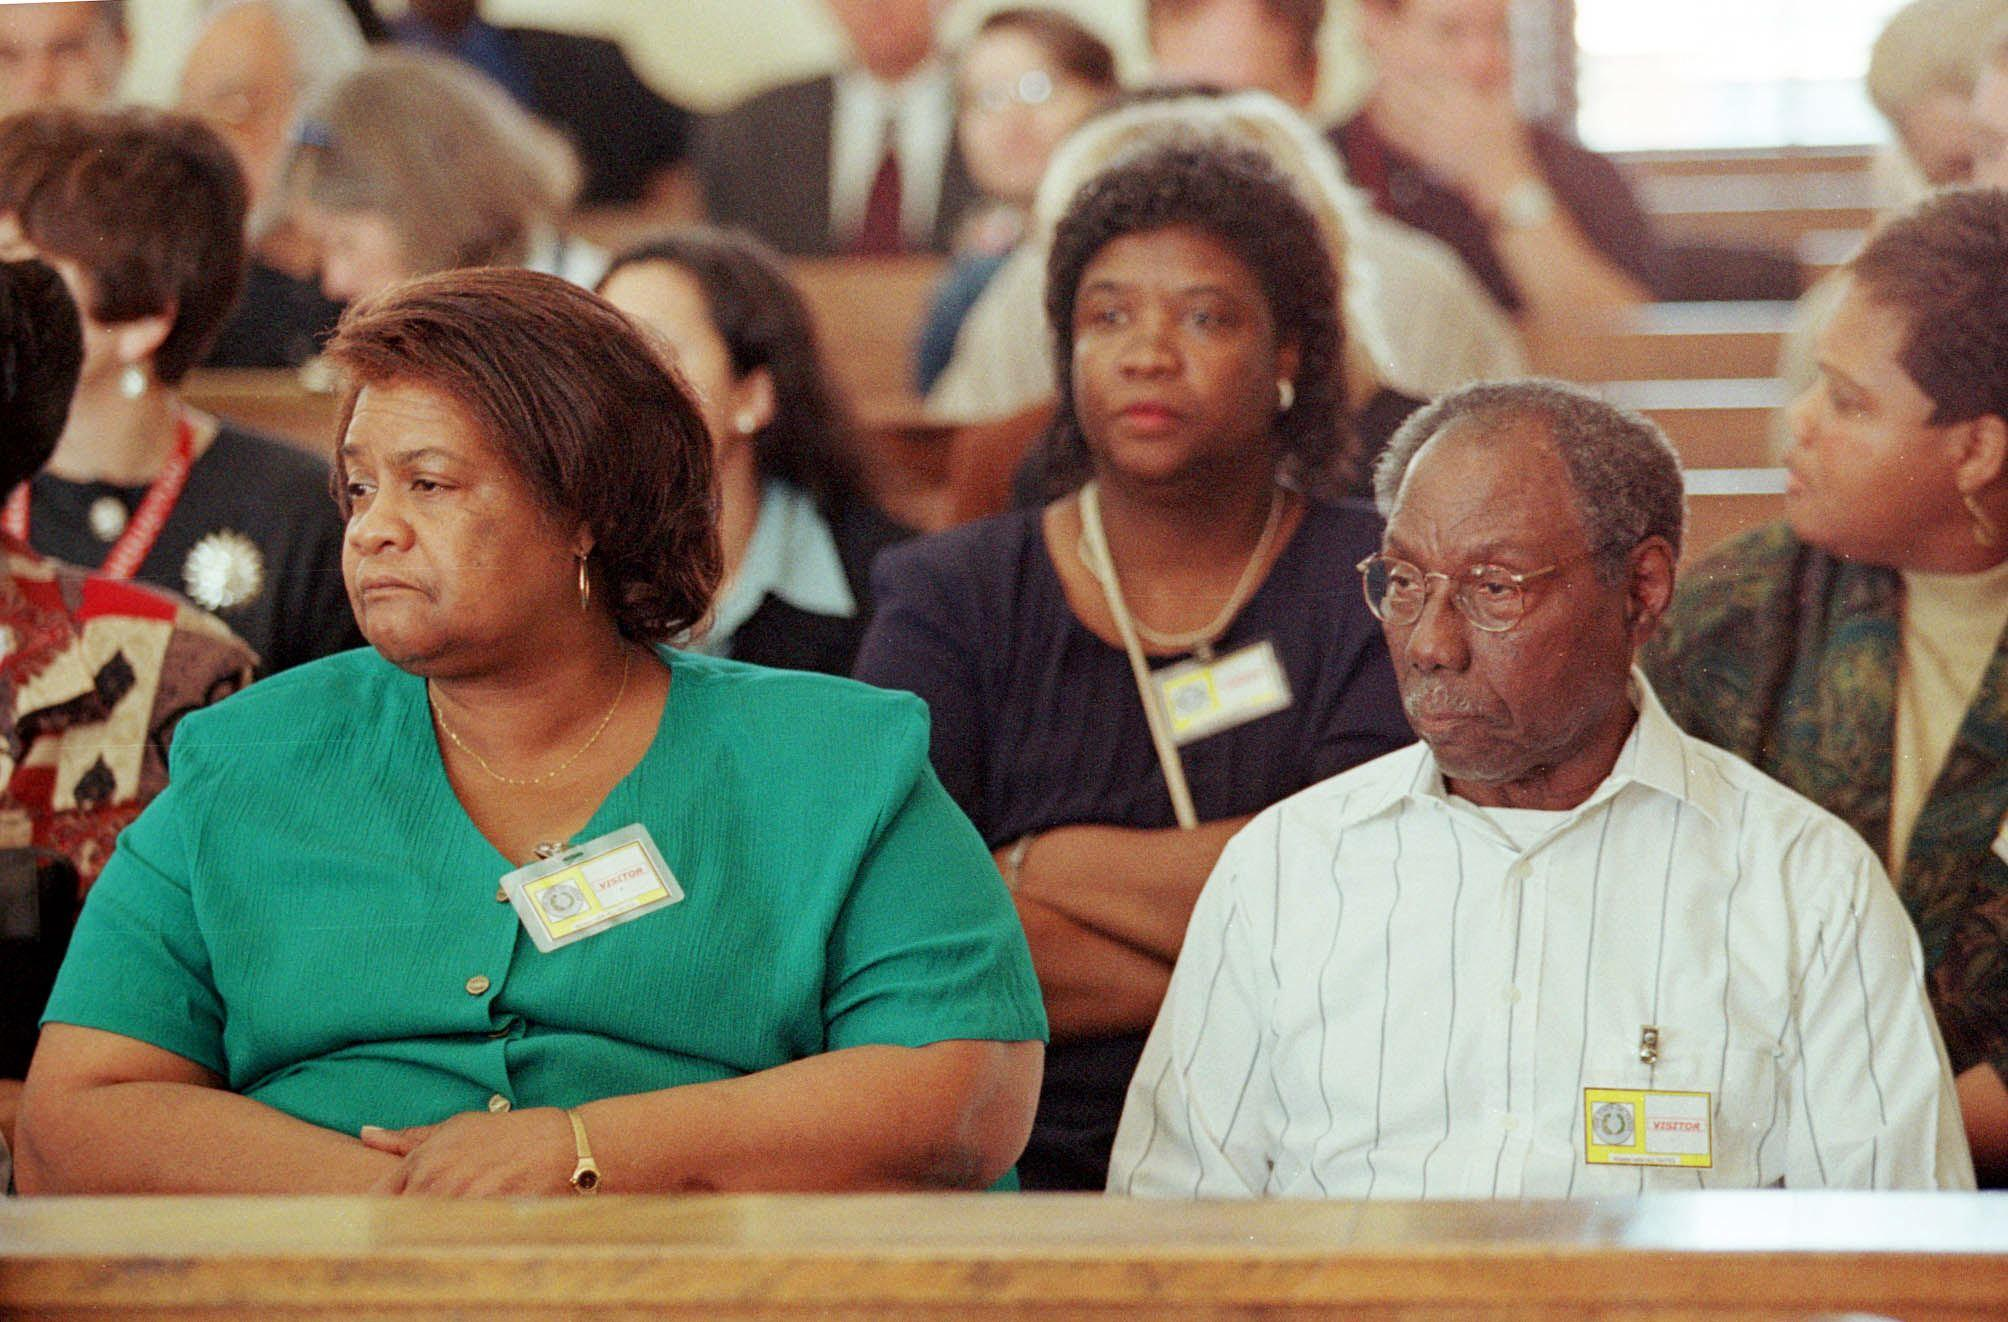 James Byrd Sr. (R) sits in the front row of the Jasper County Courthouse for day one of the capital murder trial of Bill King in Jasper, Texas February 16, 1999. At left is the sister of murder victim James Byrd Jr., Stella Brumley. (Adrees Latif/AFP/Getty Images)